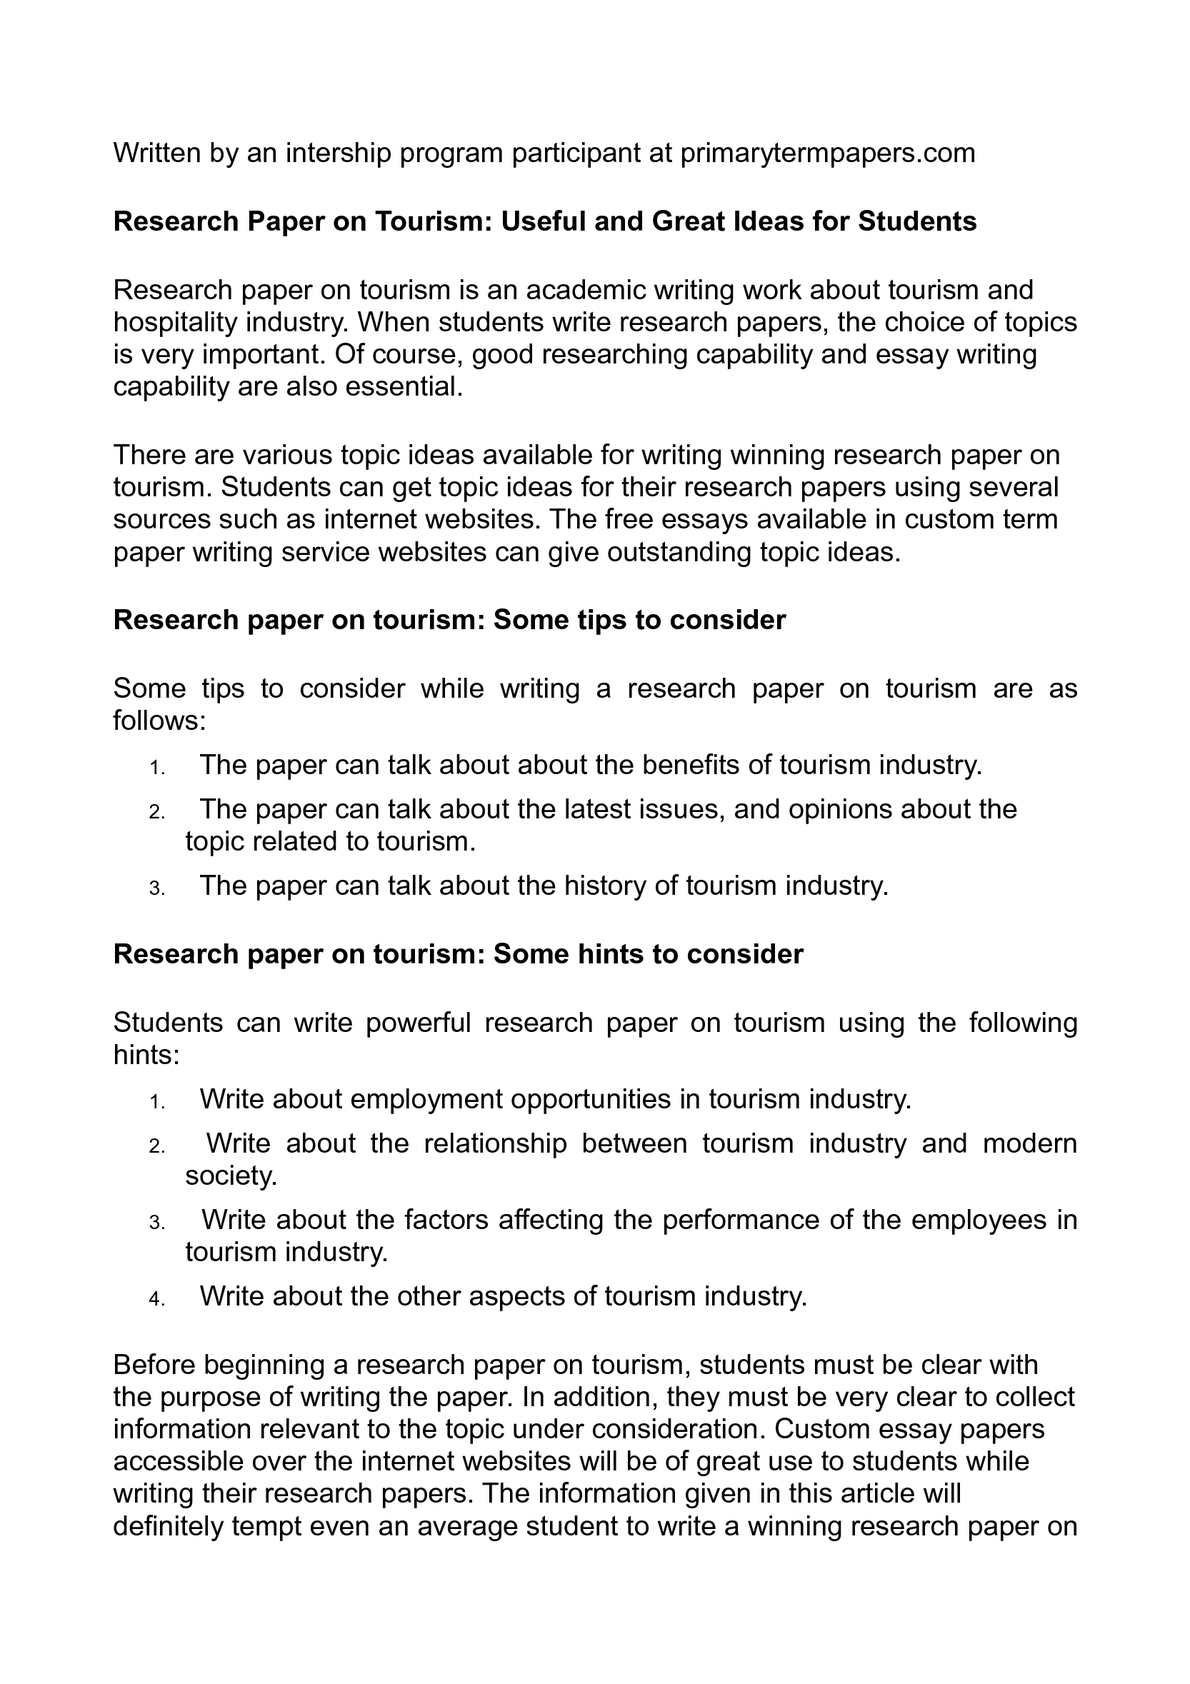 002 Research Paper Papers Ideas Surprising High School Topics 2017 About Education Topics- Sports Full